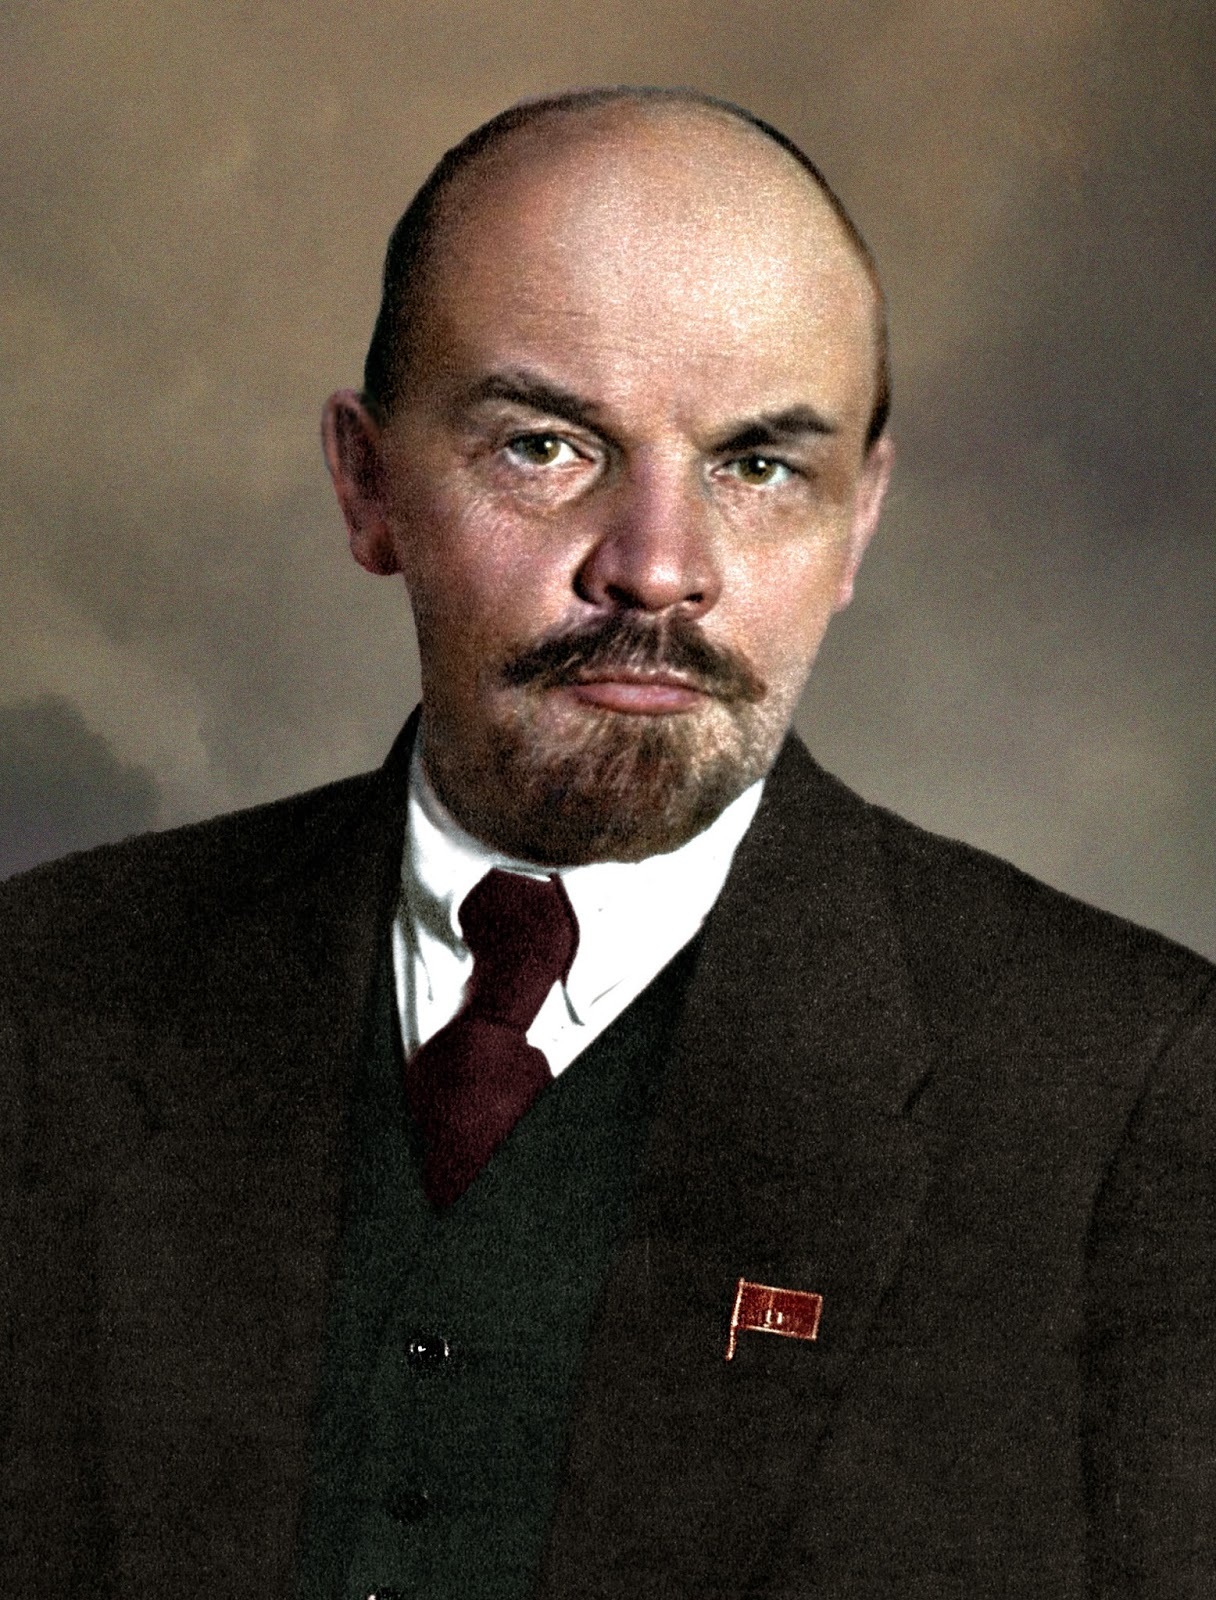 in defense of communism marxism leninism vladimir ilyich lenin the state and revolution 1917 part i class society and the state